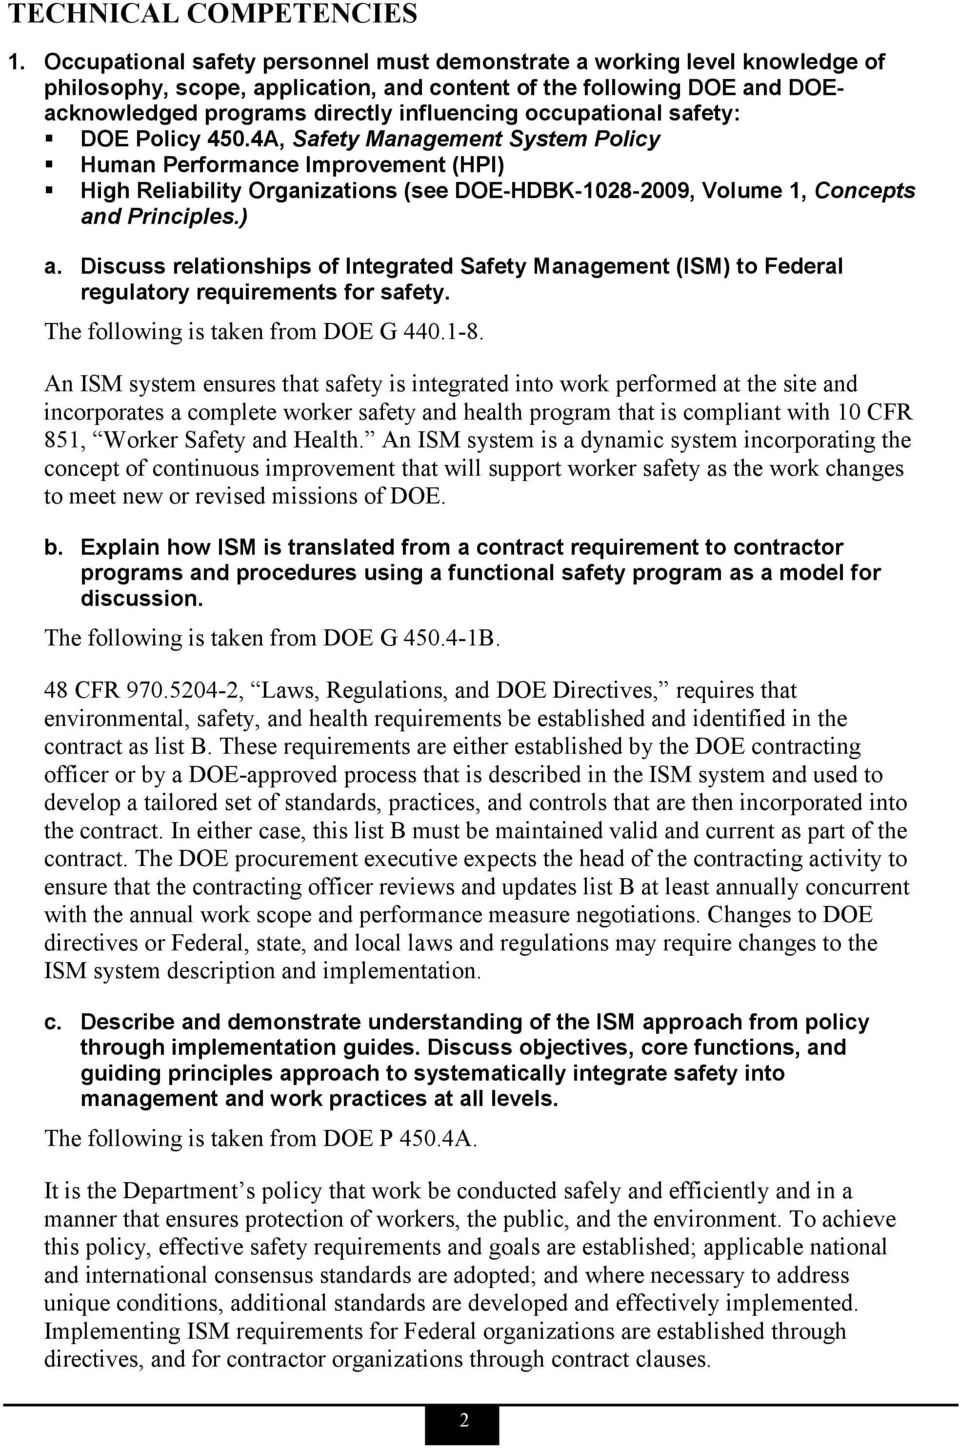 occupational safety: DOE Policy 450.4A, Safety Management System Policy Human Performance Improvement (HPI) High Reliability Organizations (see DOE-HDBK-1028-2009, Volume 1, Concepts and Principles.